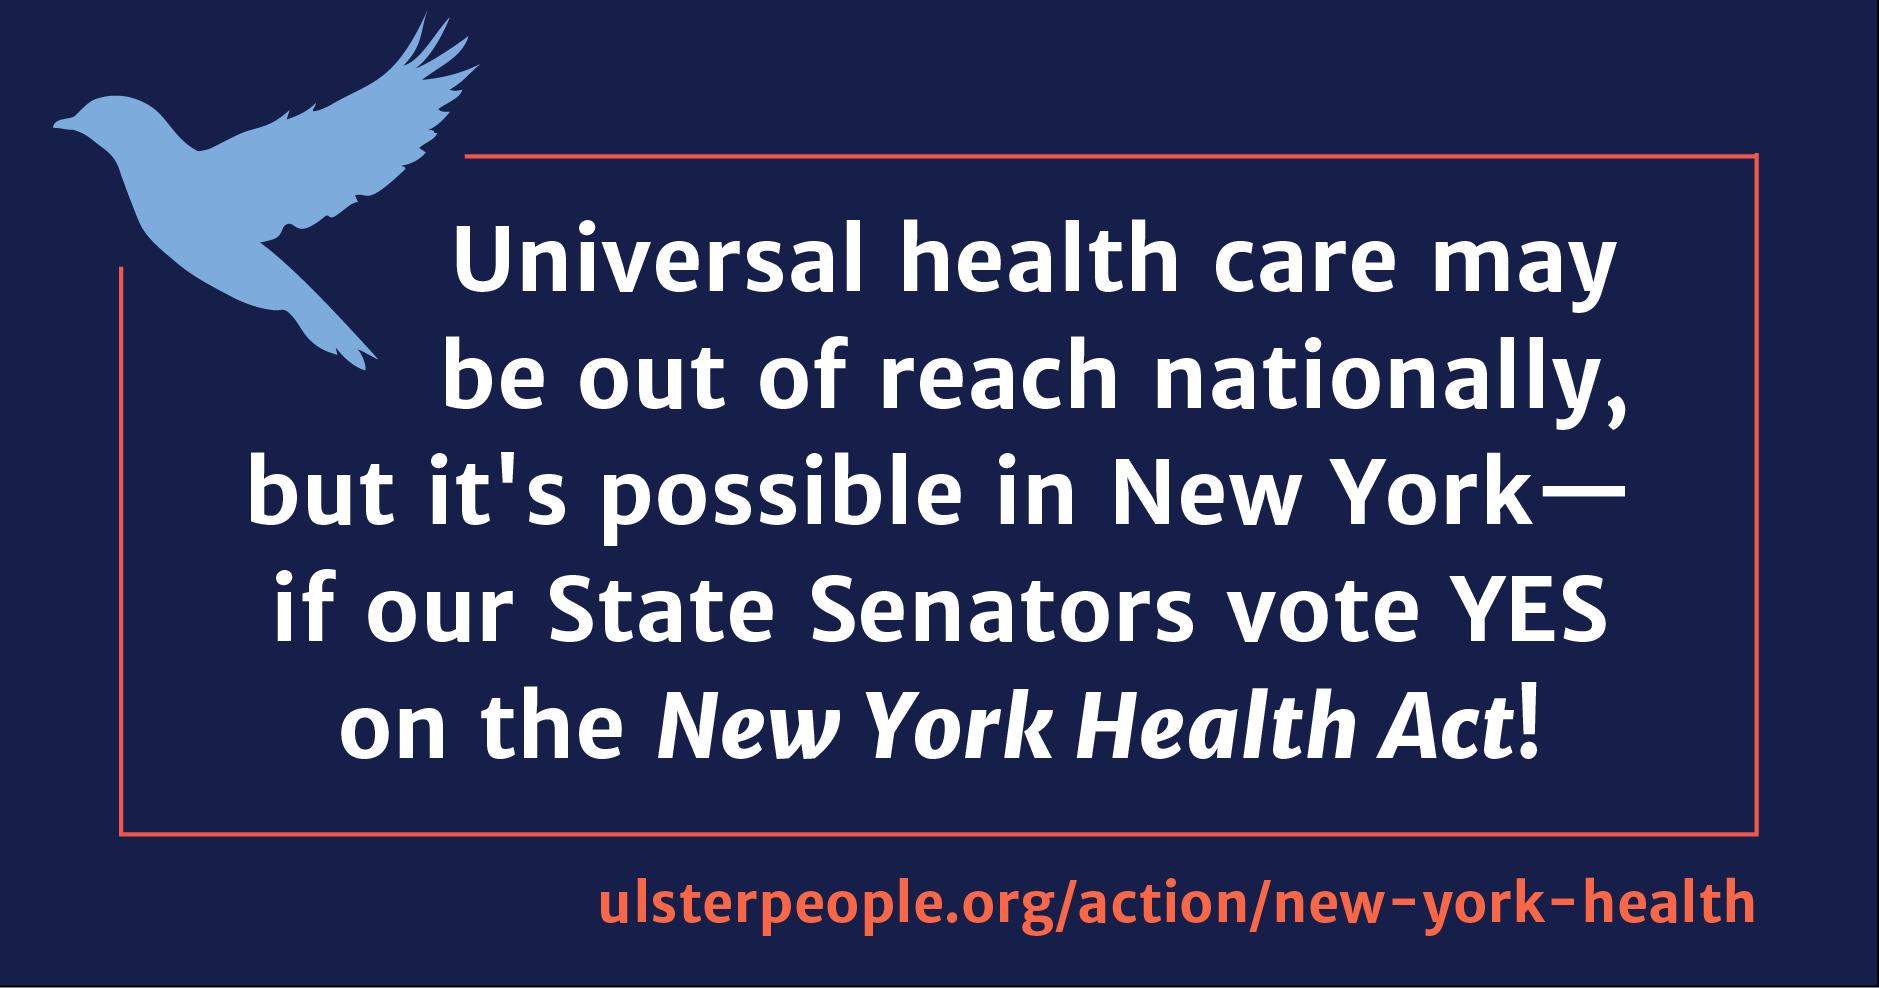 Universal health care may be out of reach nationally, but it's possible in New York— if our State Senators vote YES on the New York Health Act!